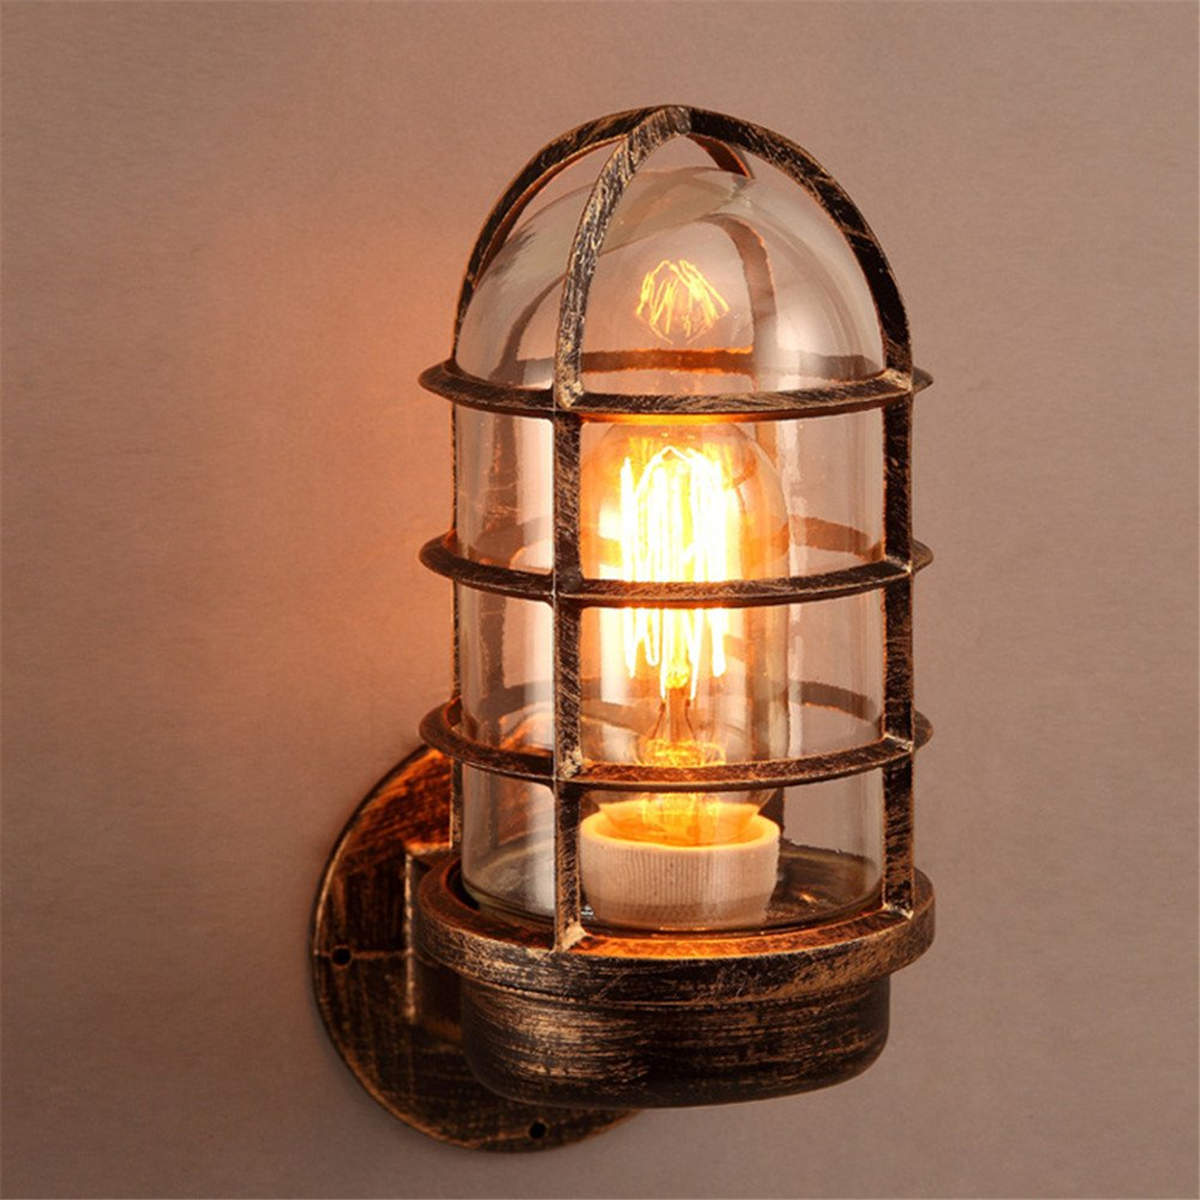 Wall sconces industrial unique wall light cage guard sconce loft light fixture modern indoor lighting wall lamps iron copper in wall lamps from lights